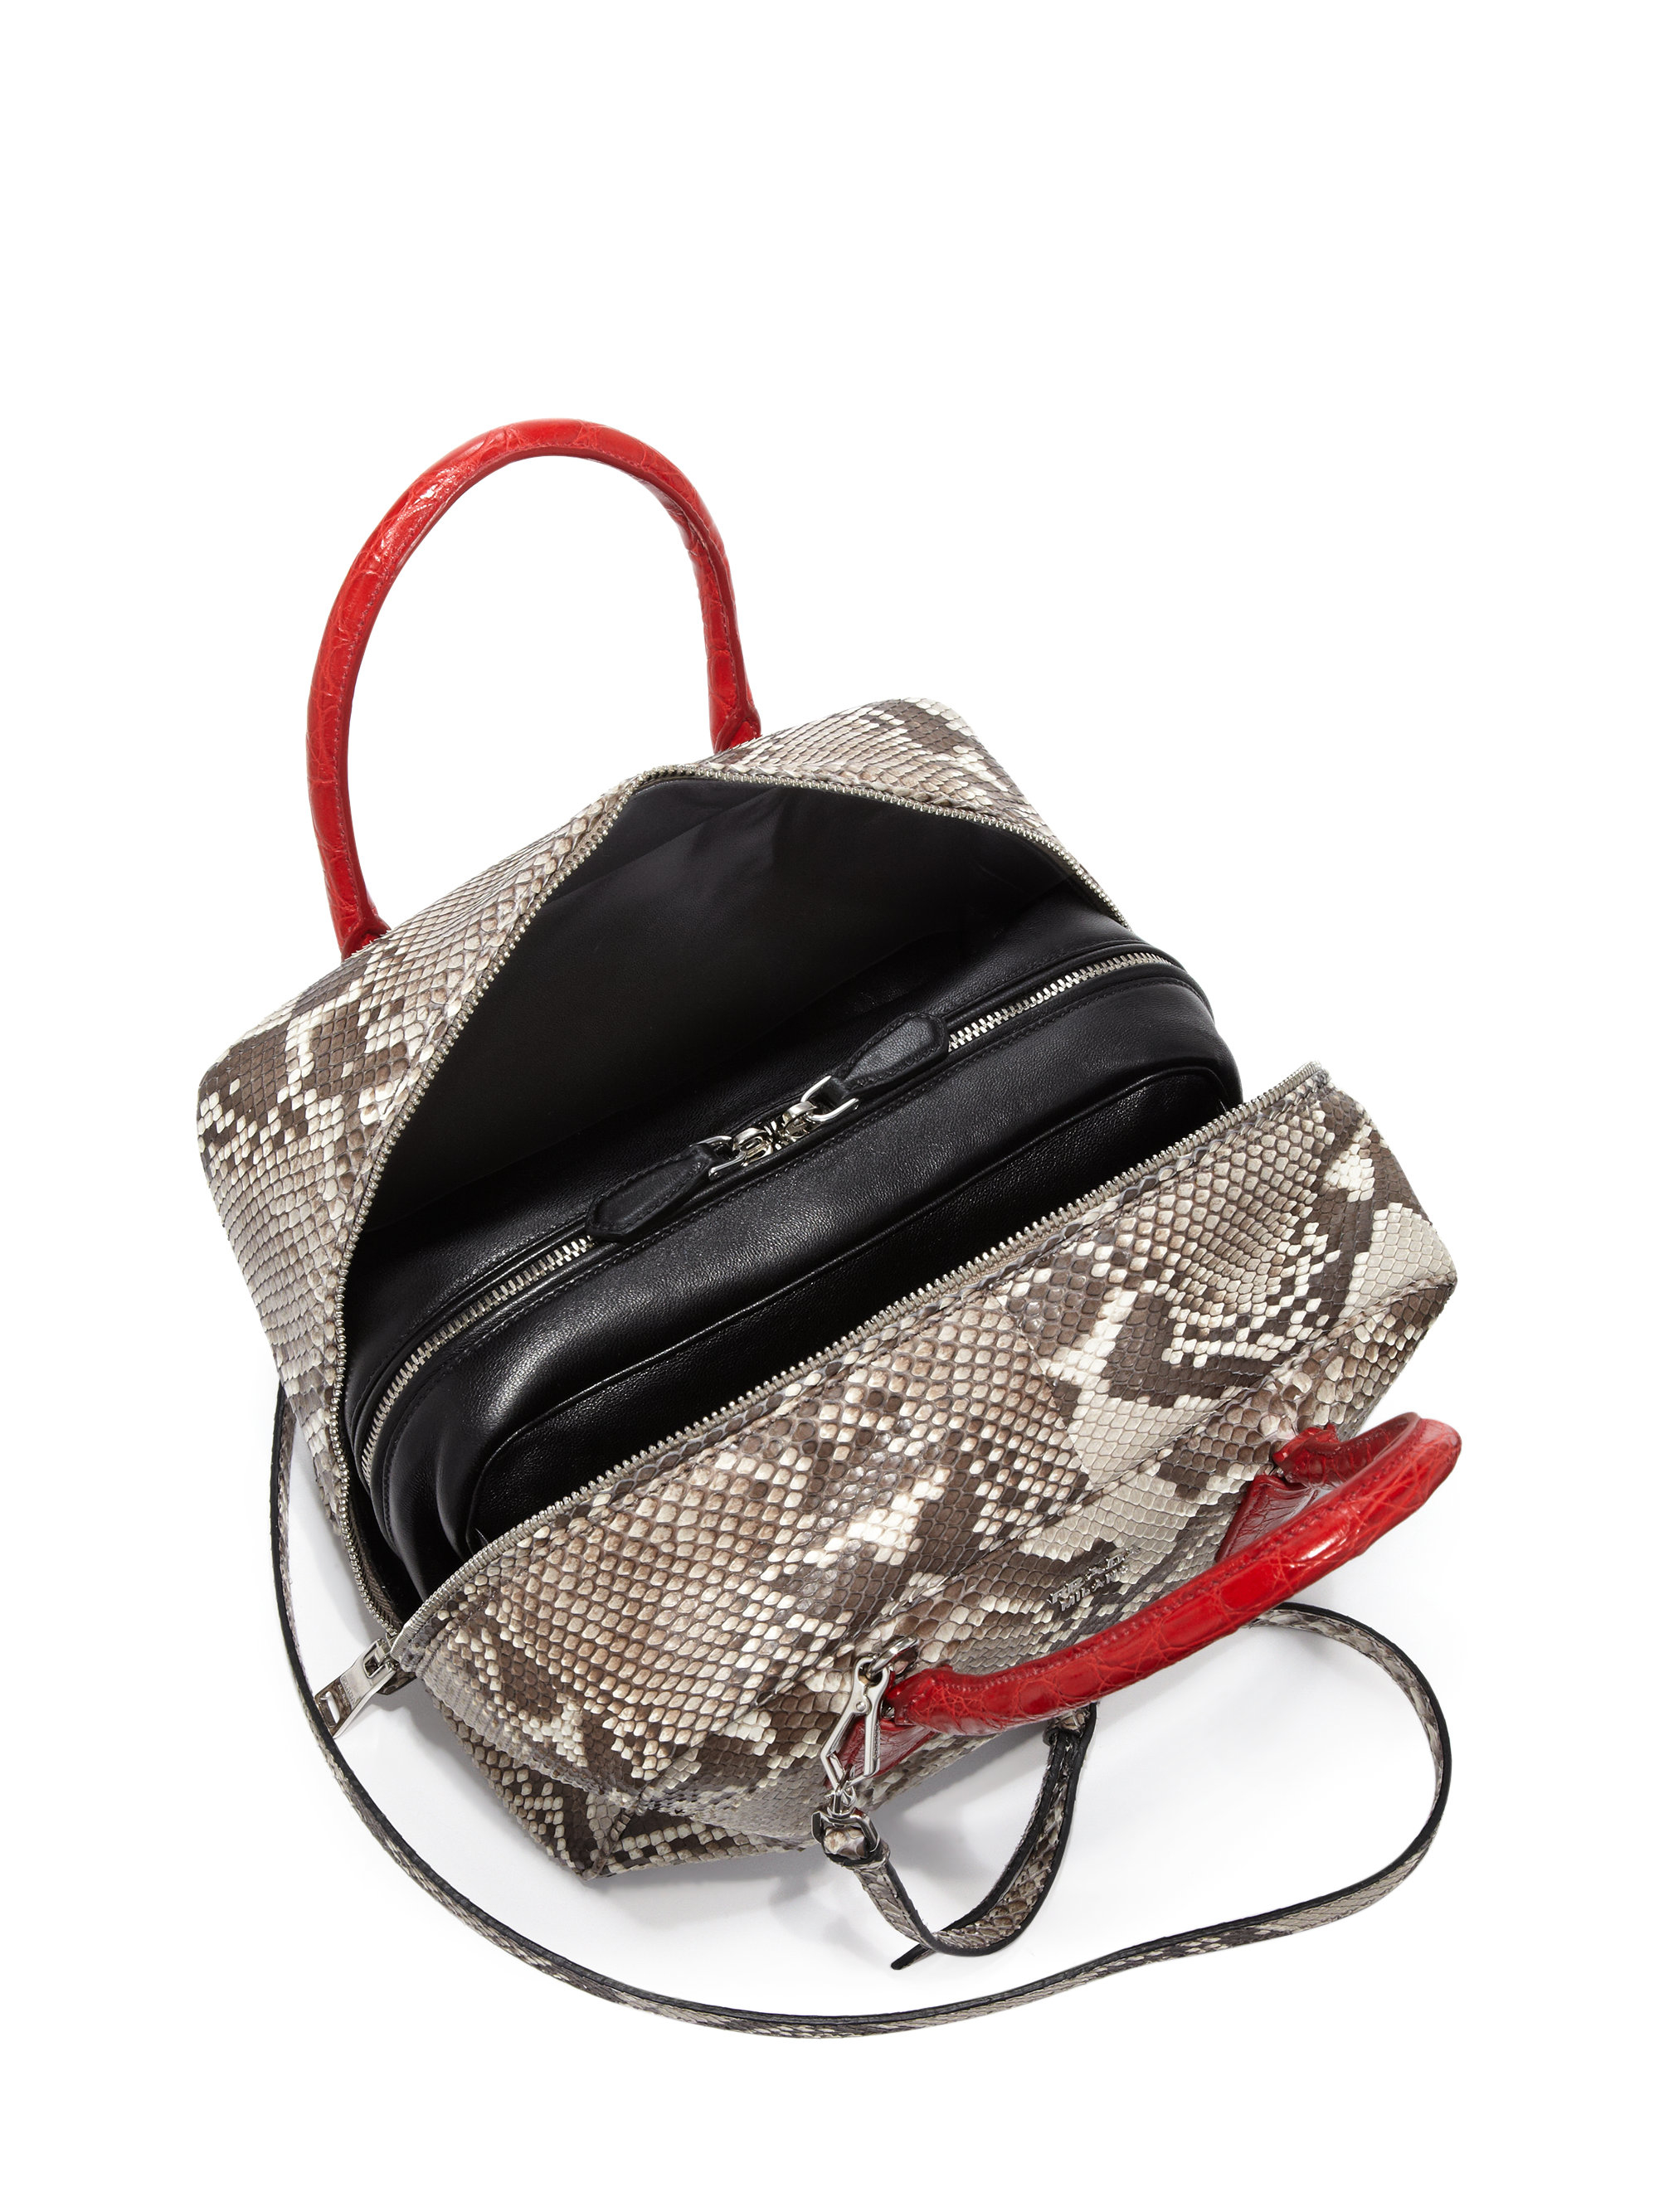 Prada Python \u0026amp; Crocodile Inside Bag in Red (natural-red) | Lyst